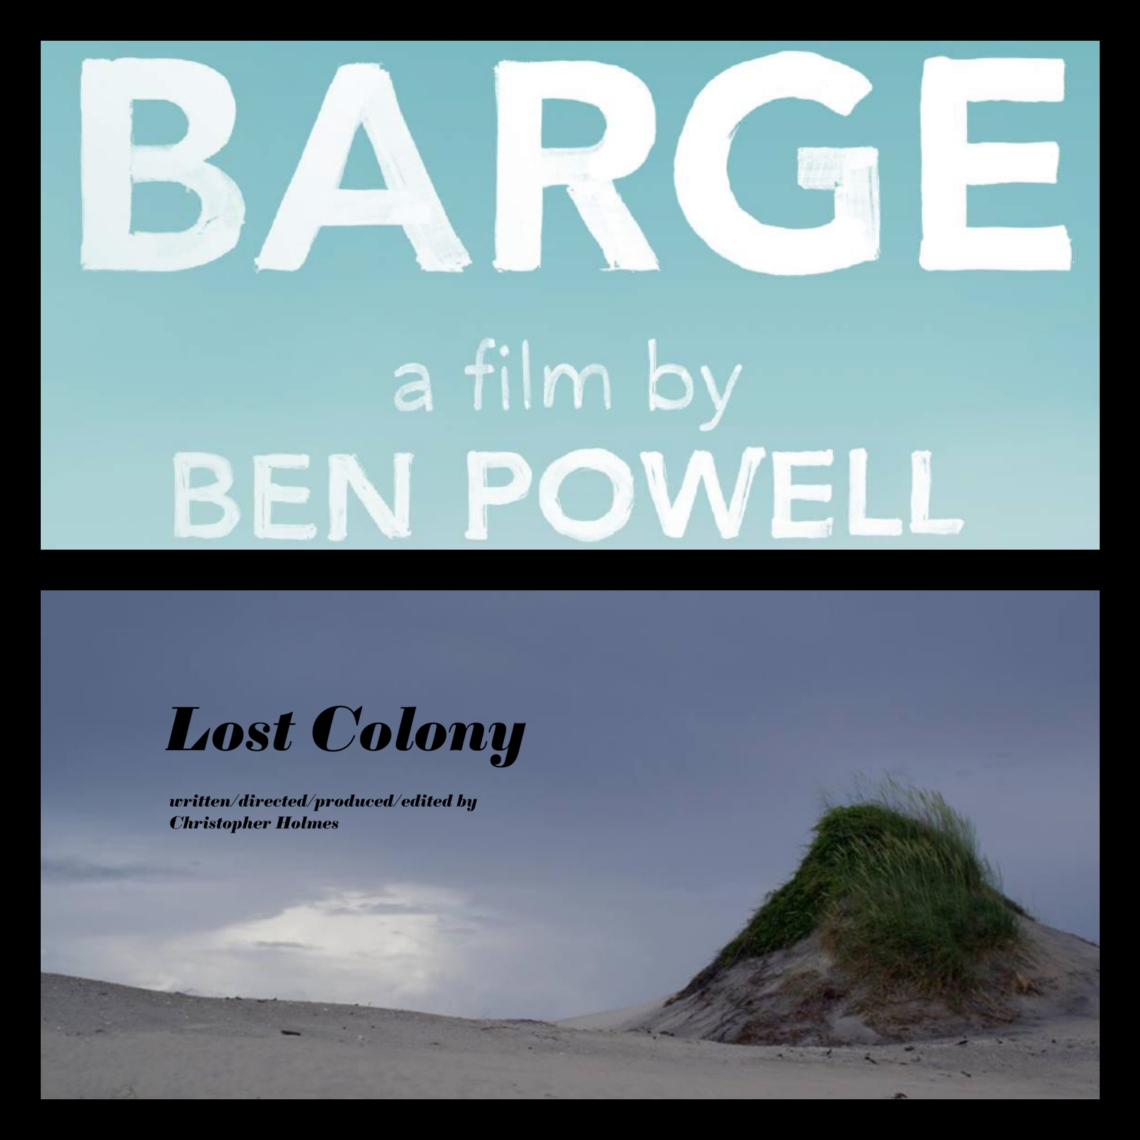 Barge and Lost Colony Collage